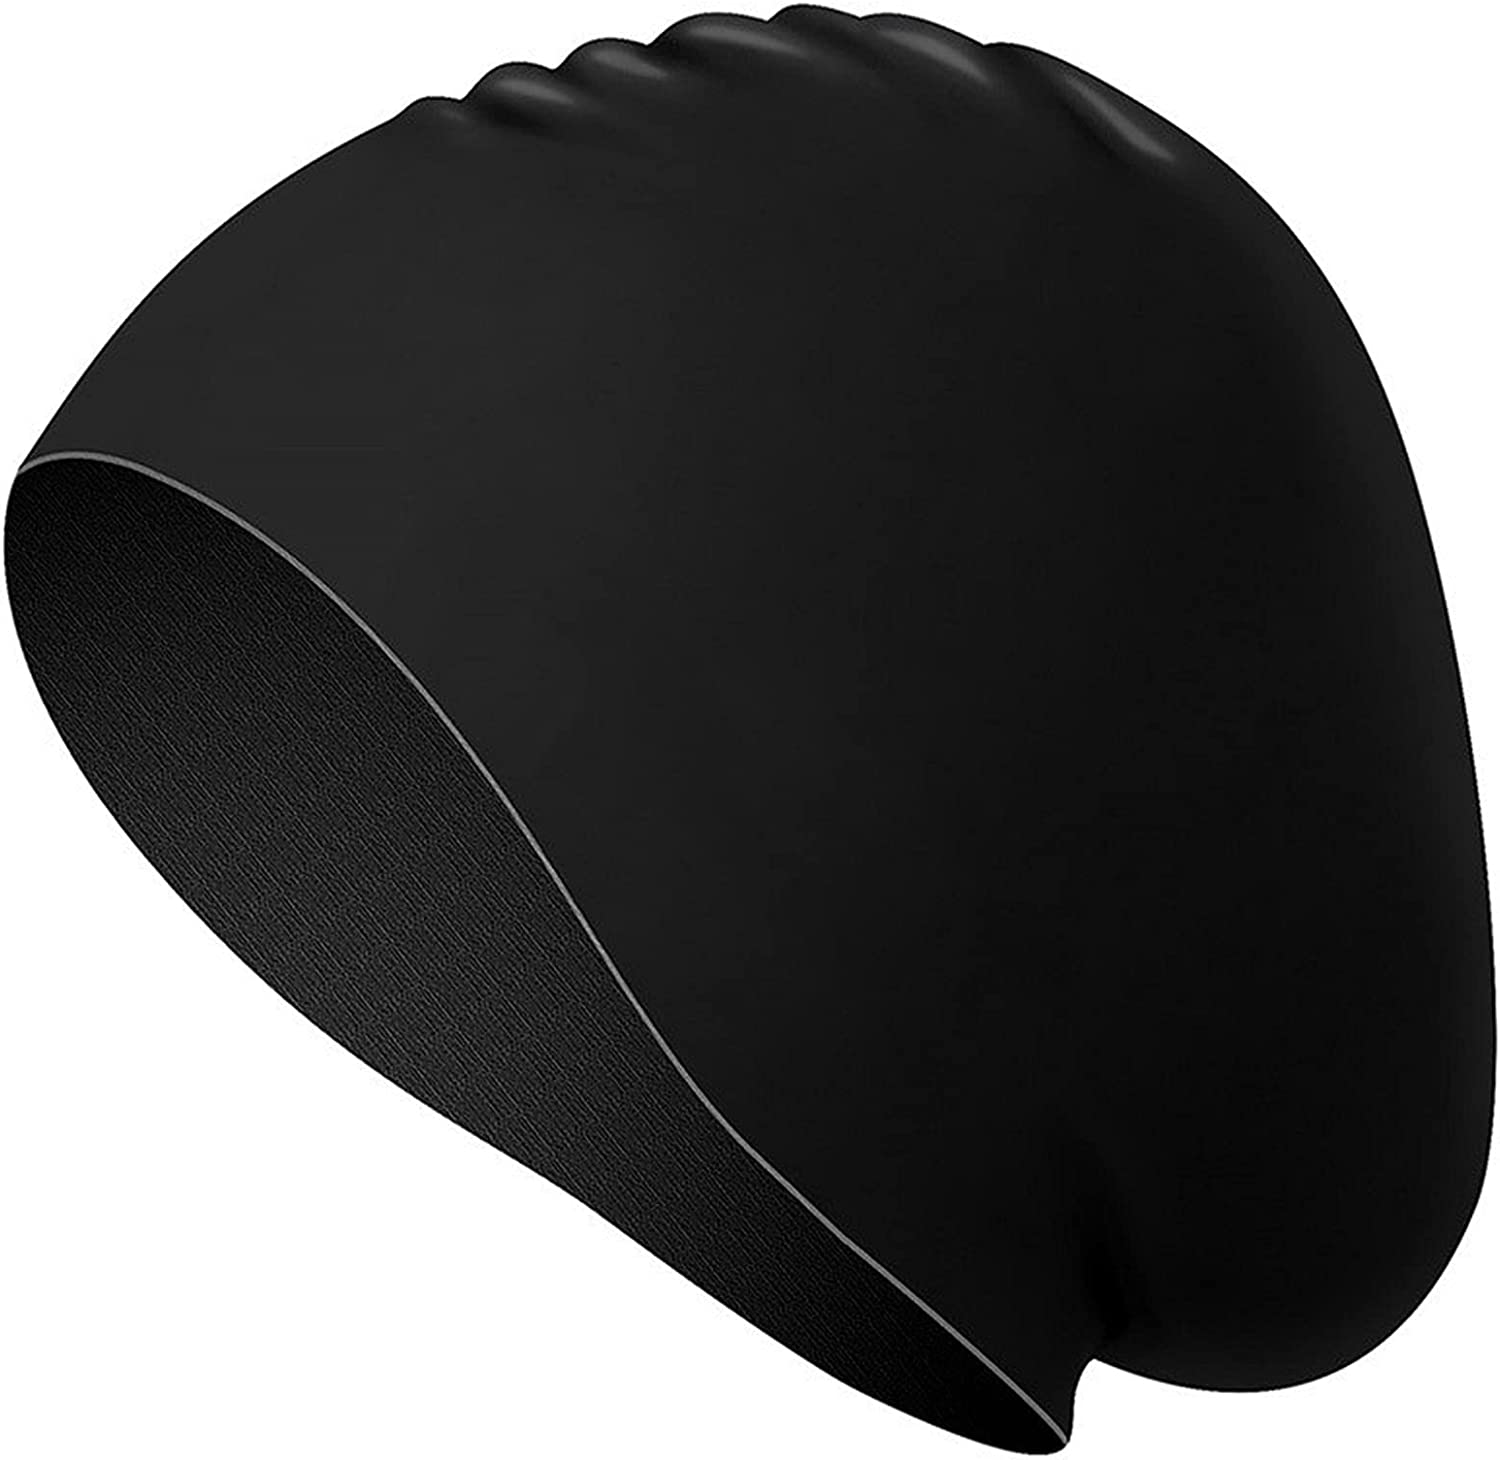 LILINGJIA Silicone Limited time trial price Men and Women Increas Great interest Waterproof Swimming Cap